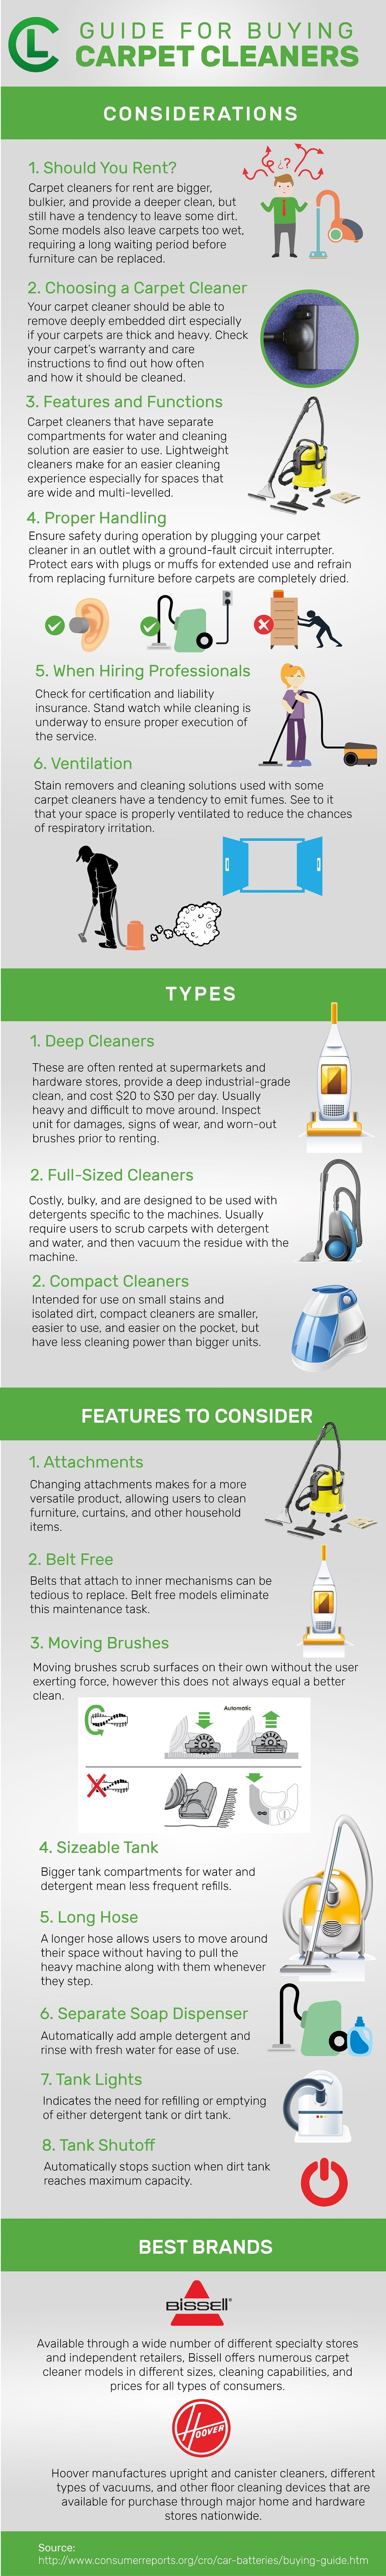 Guide For Buying Carpet Cleaners Infographic